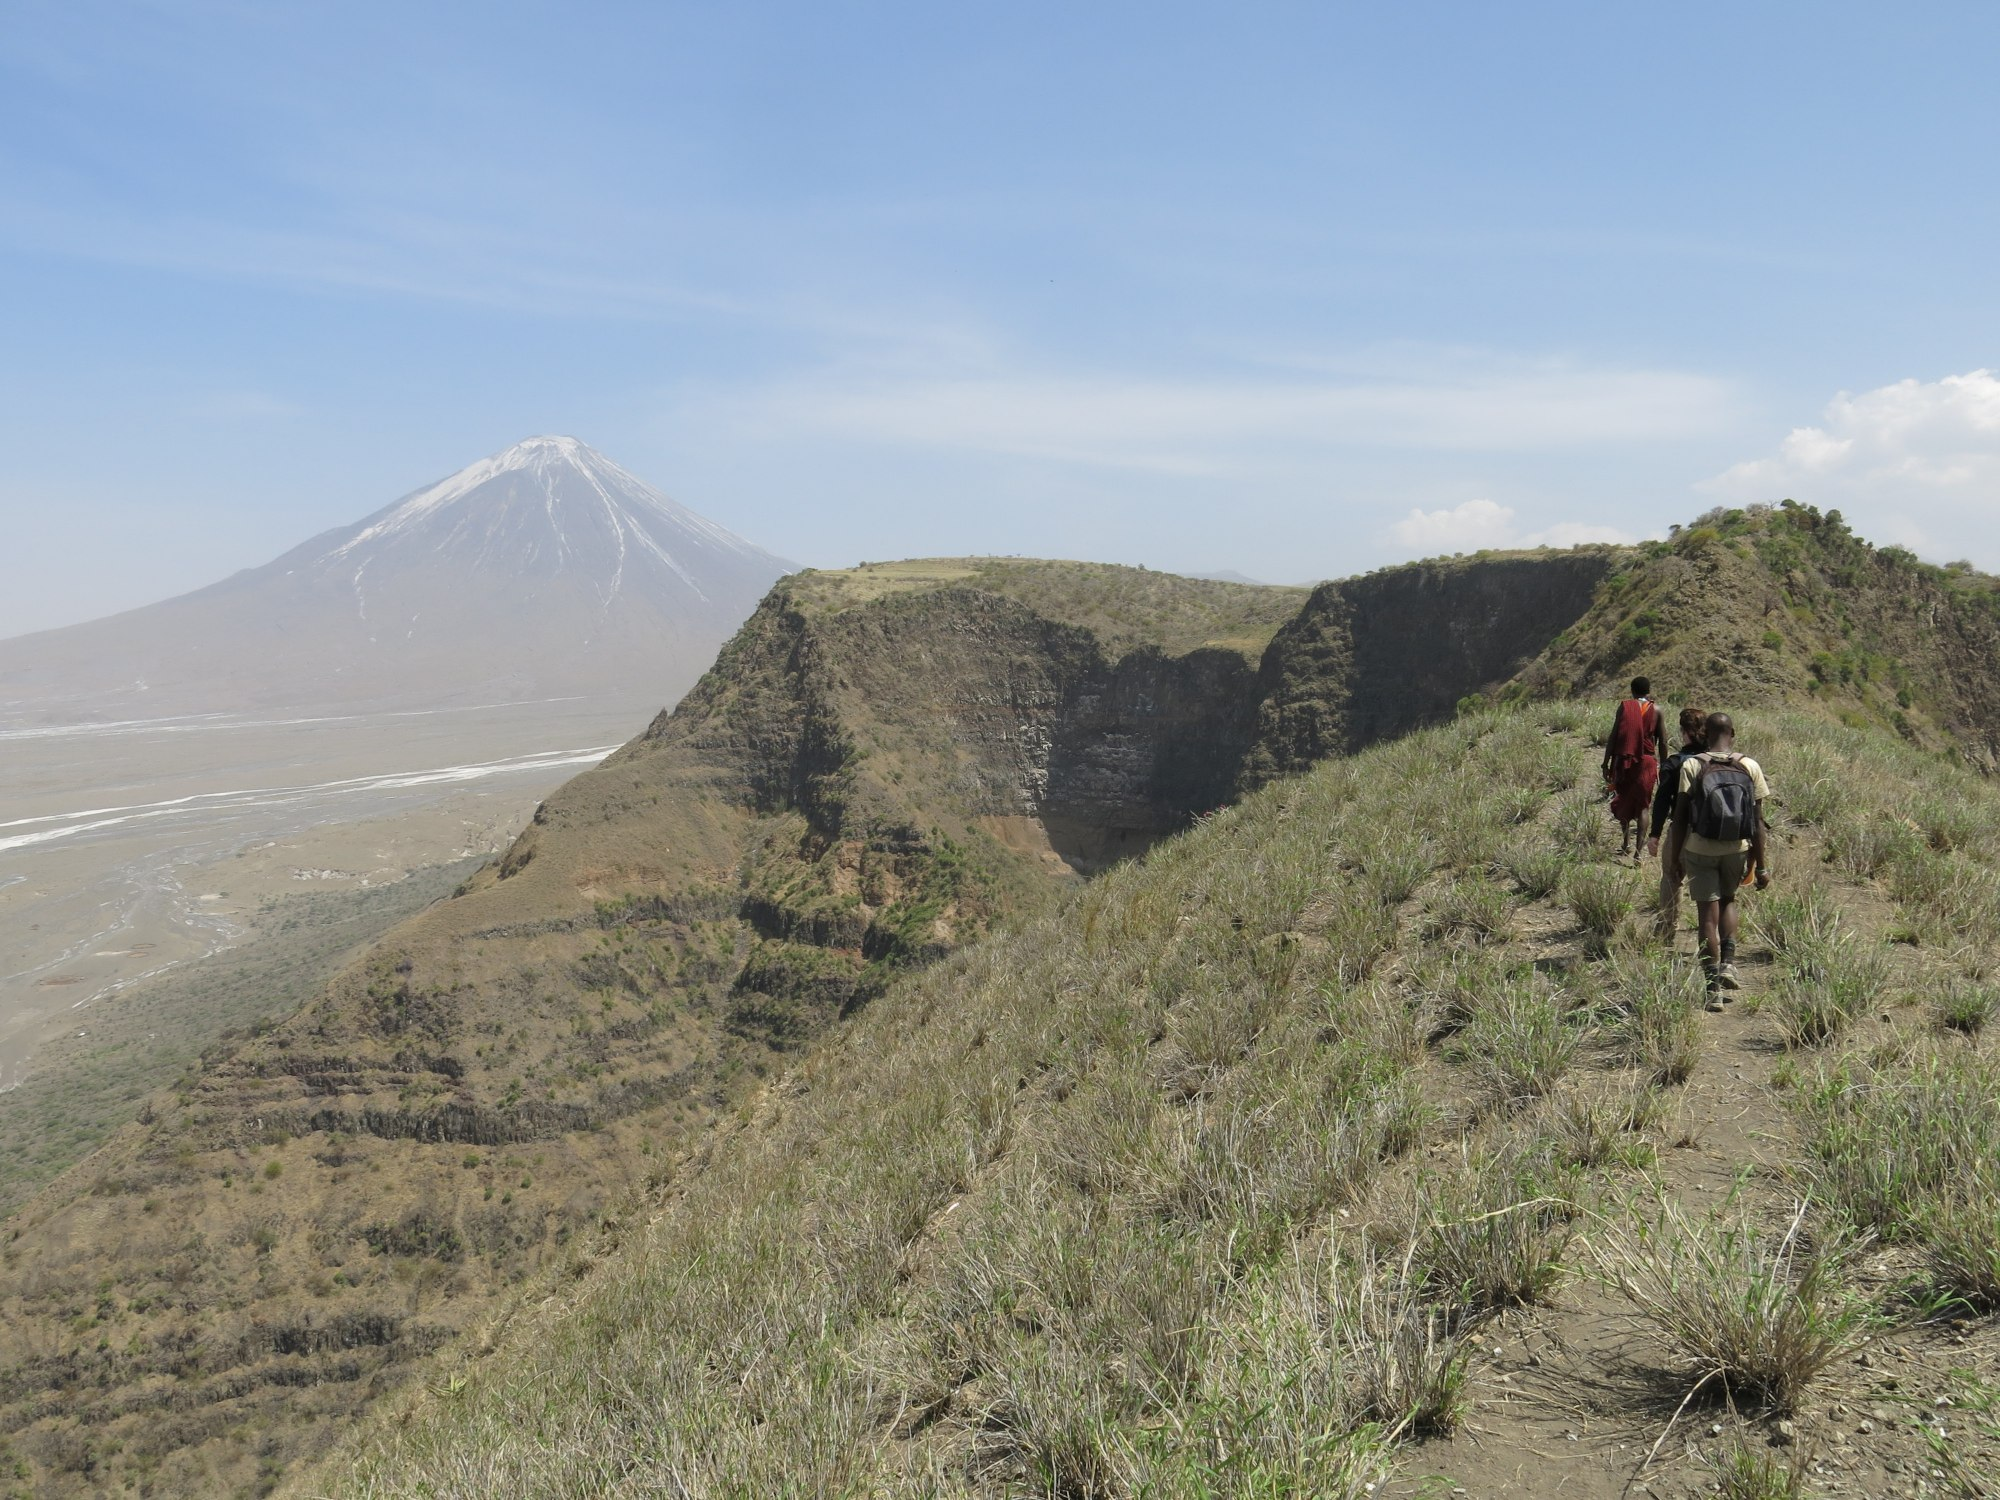 The Great Rift Valley Trek & Walking in the footsteps of man combined - An off the beaten track adventure…Empakai - OlduvaiAn epic week of adventure with 2 nights at Lake Natron Camp.